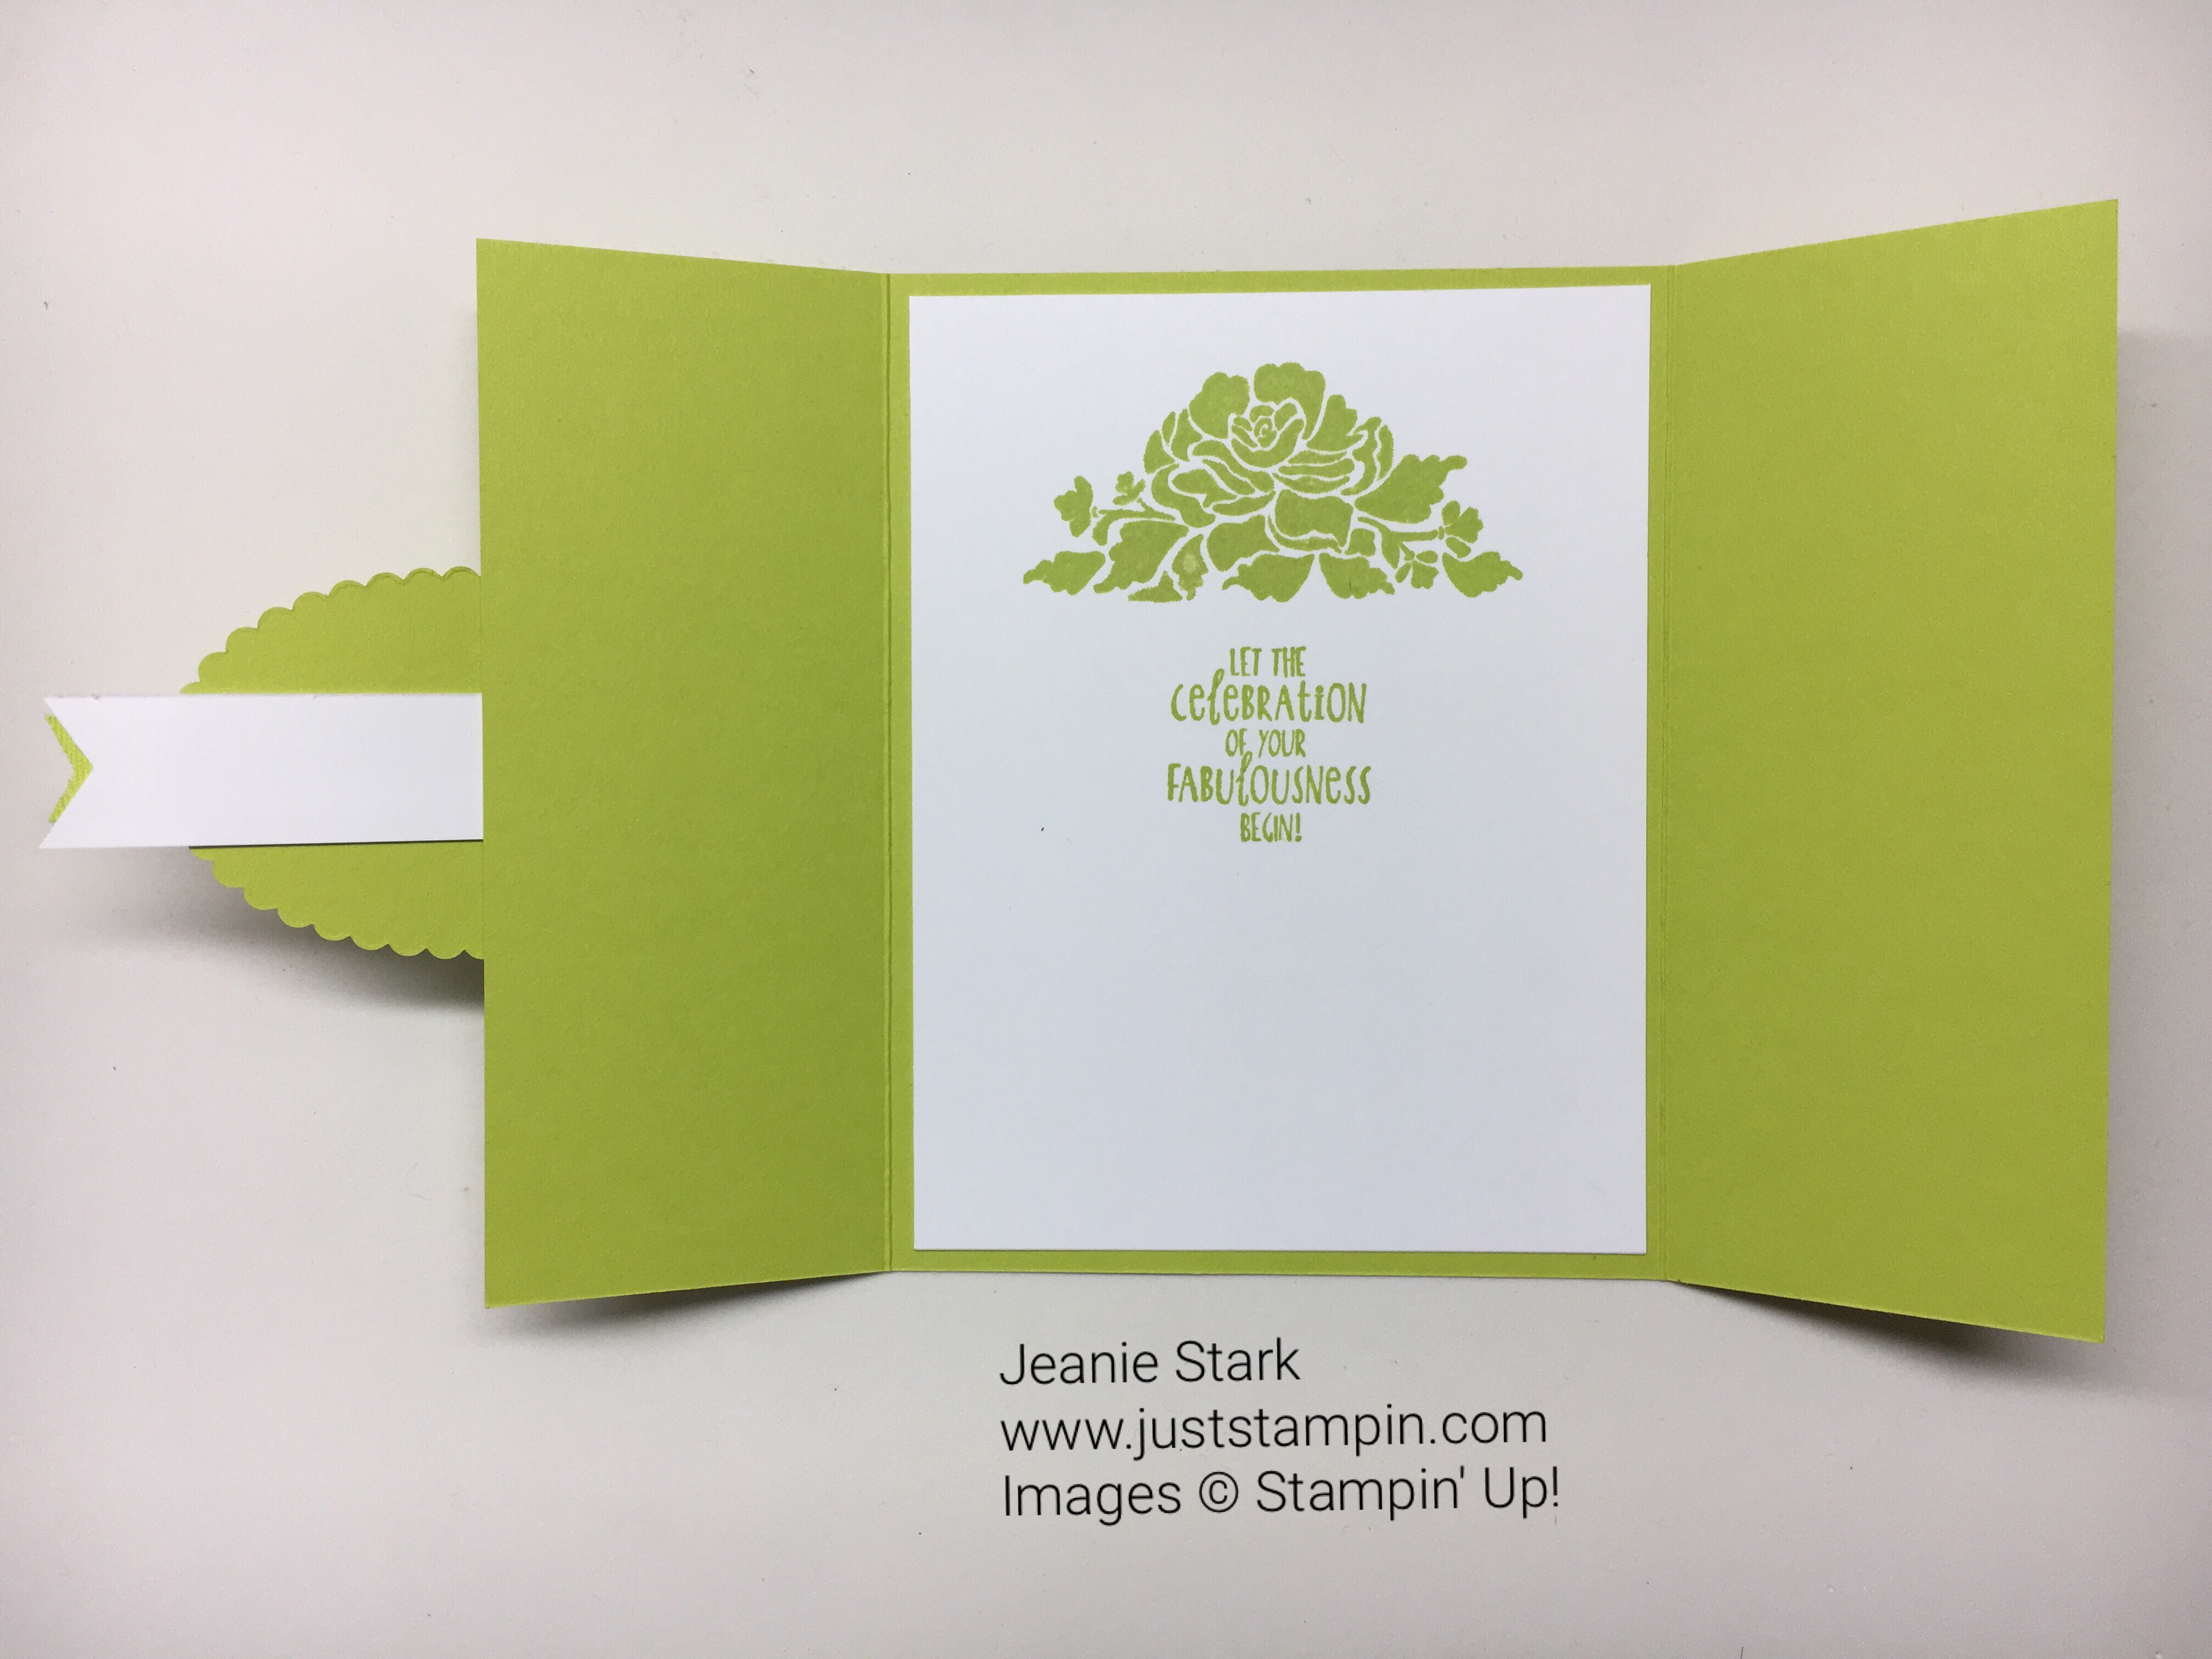 Stampin Up Happy Birthday Gorgeous and Floral Phrases Fresh Florals Gate Fold birthday card idea - Jeanie Stark StampinUp